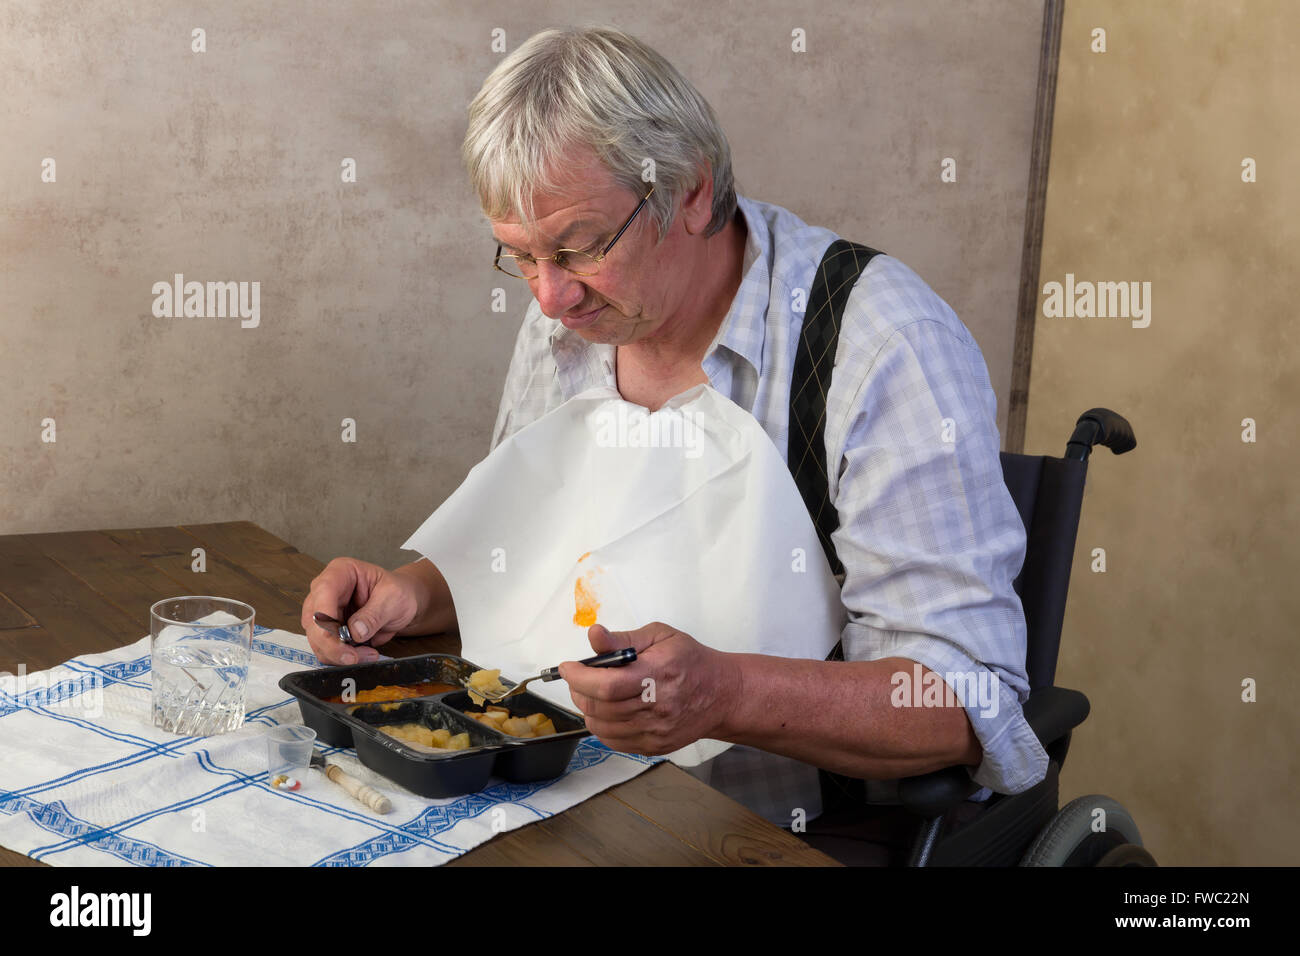 Elderly man in nursing home disliking his ready made dinner - Stock Image